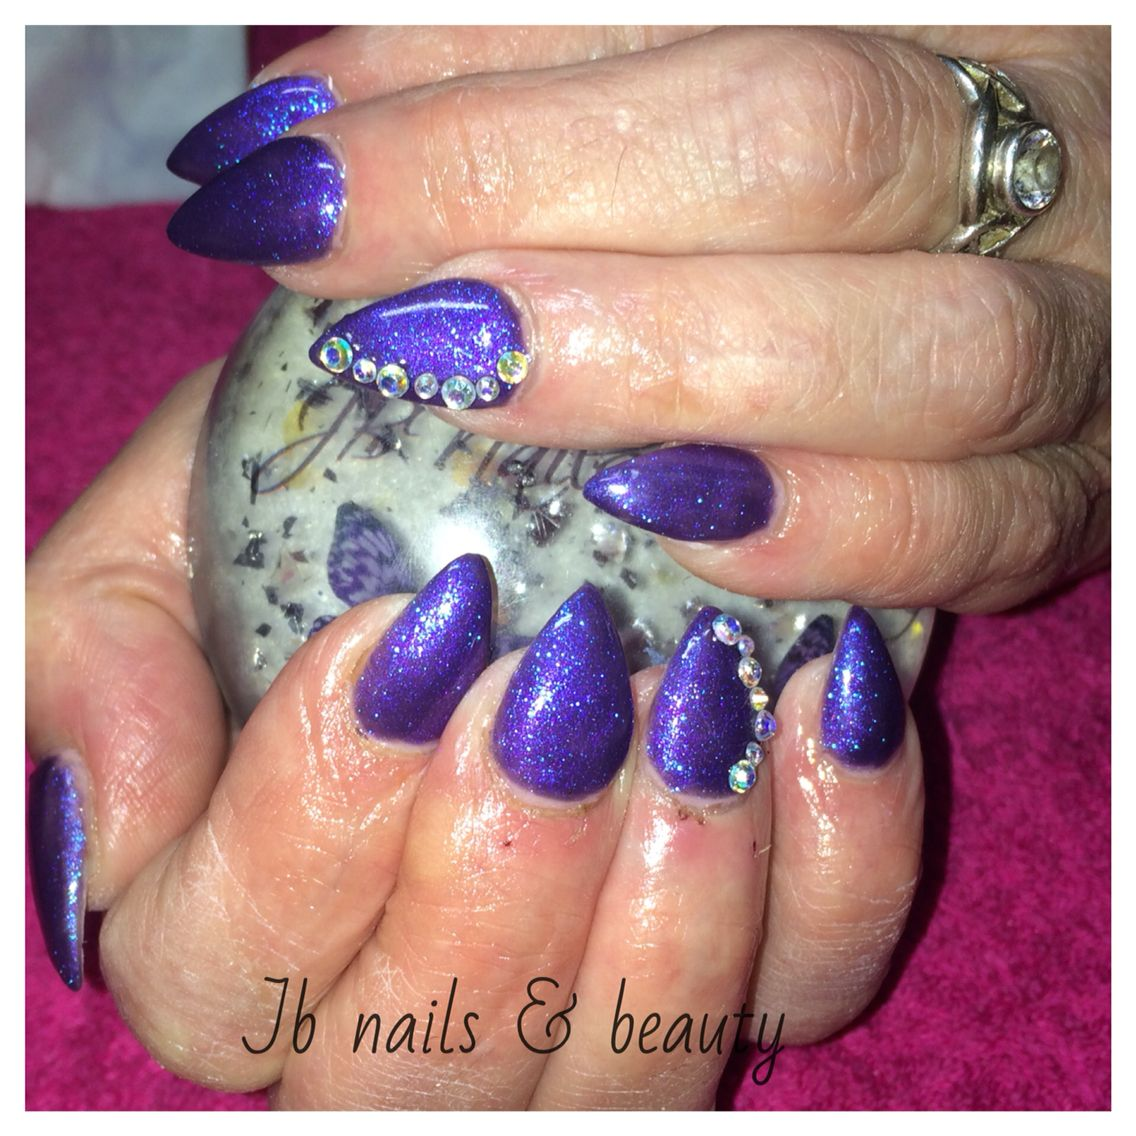 Deep Blue nail extensions with added bling & sparkle | My nails ...